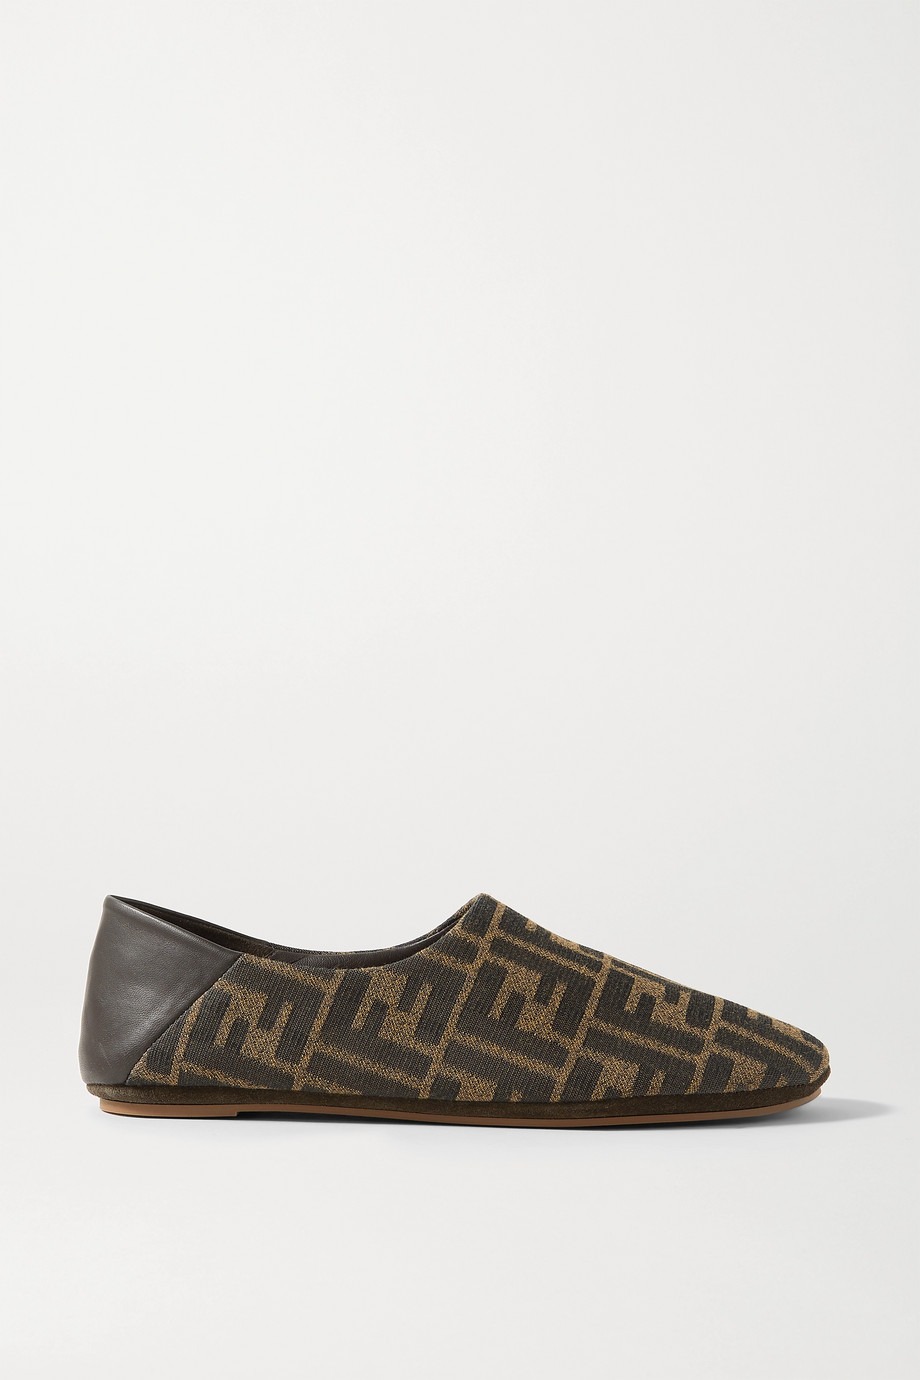 FENDI Leather-trimmed canvas collapsible-heel slippers